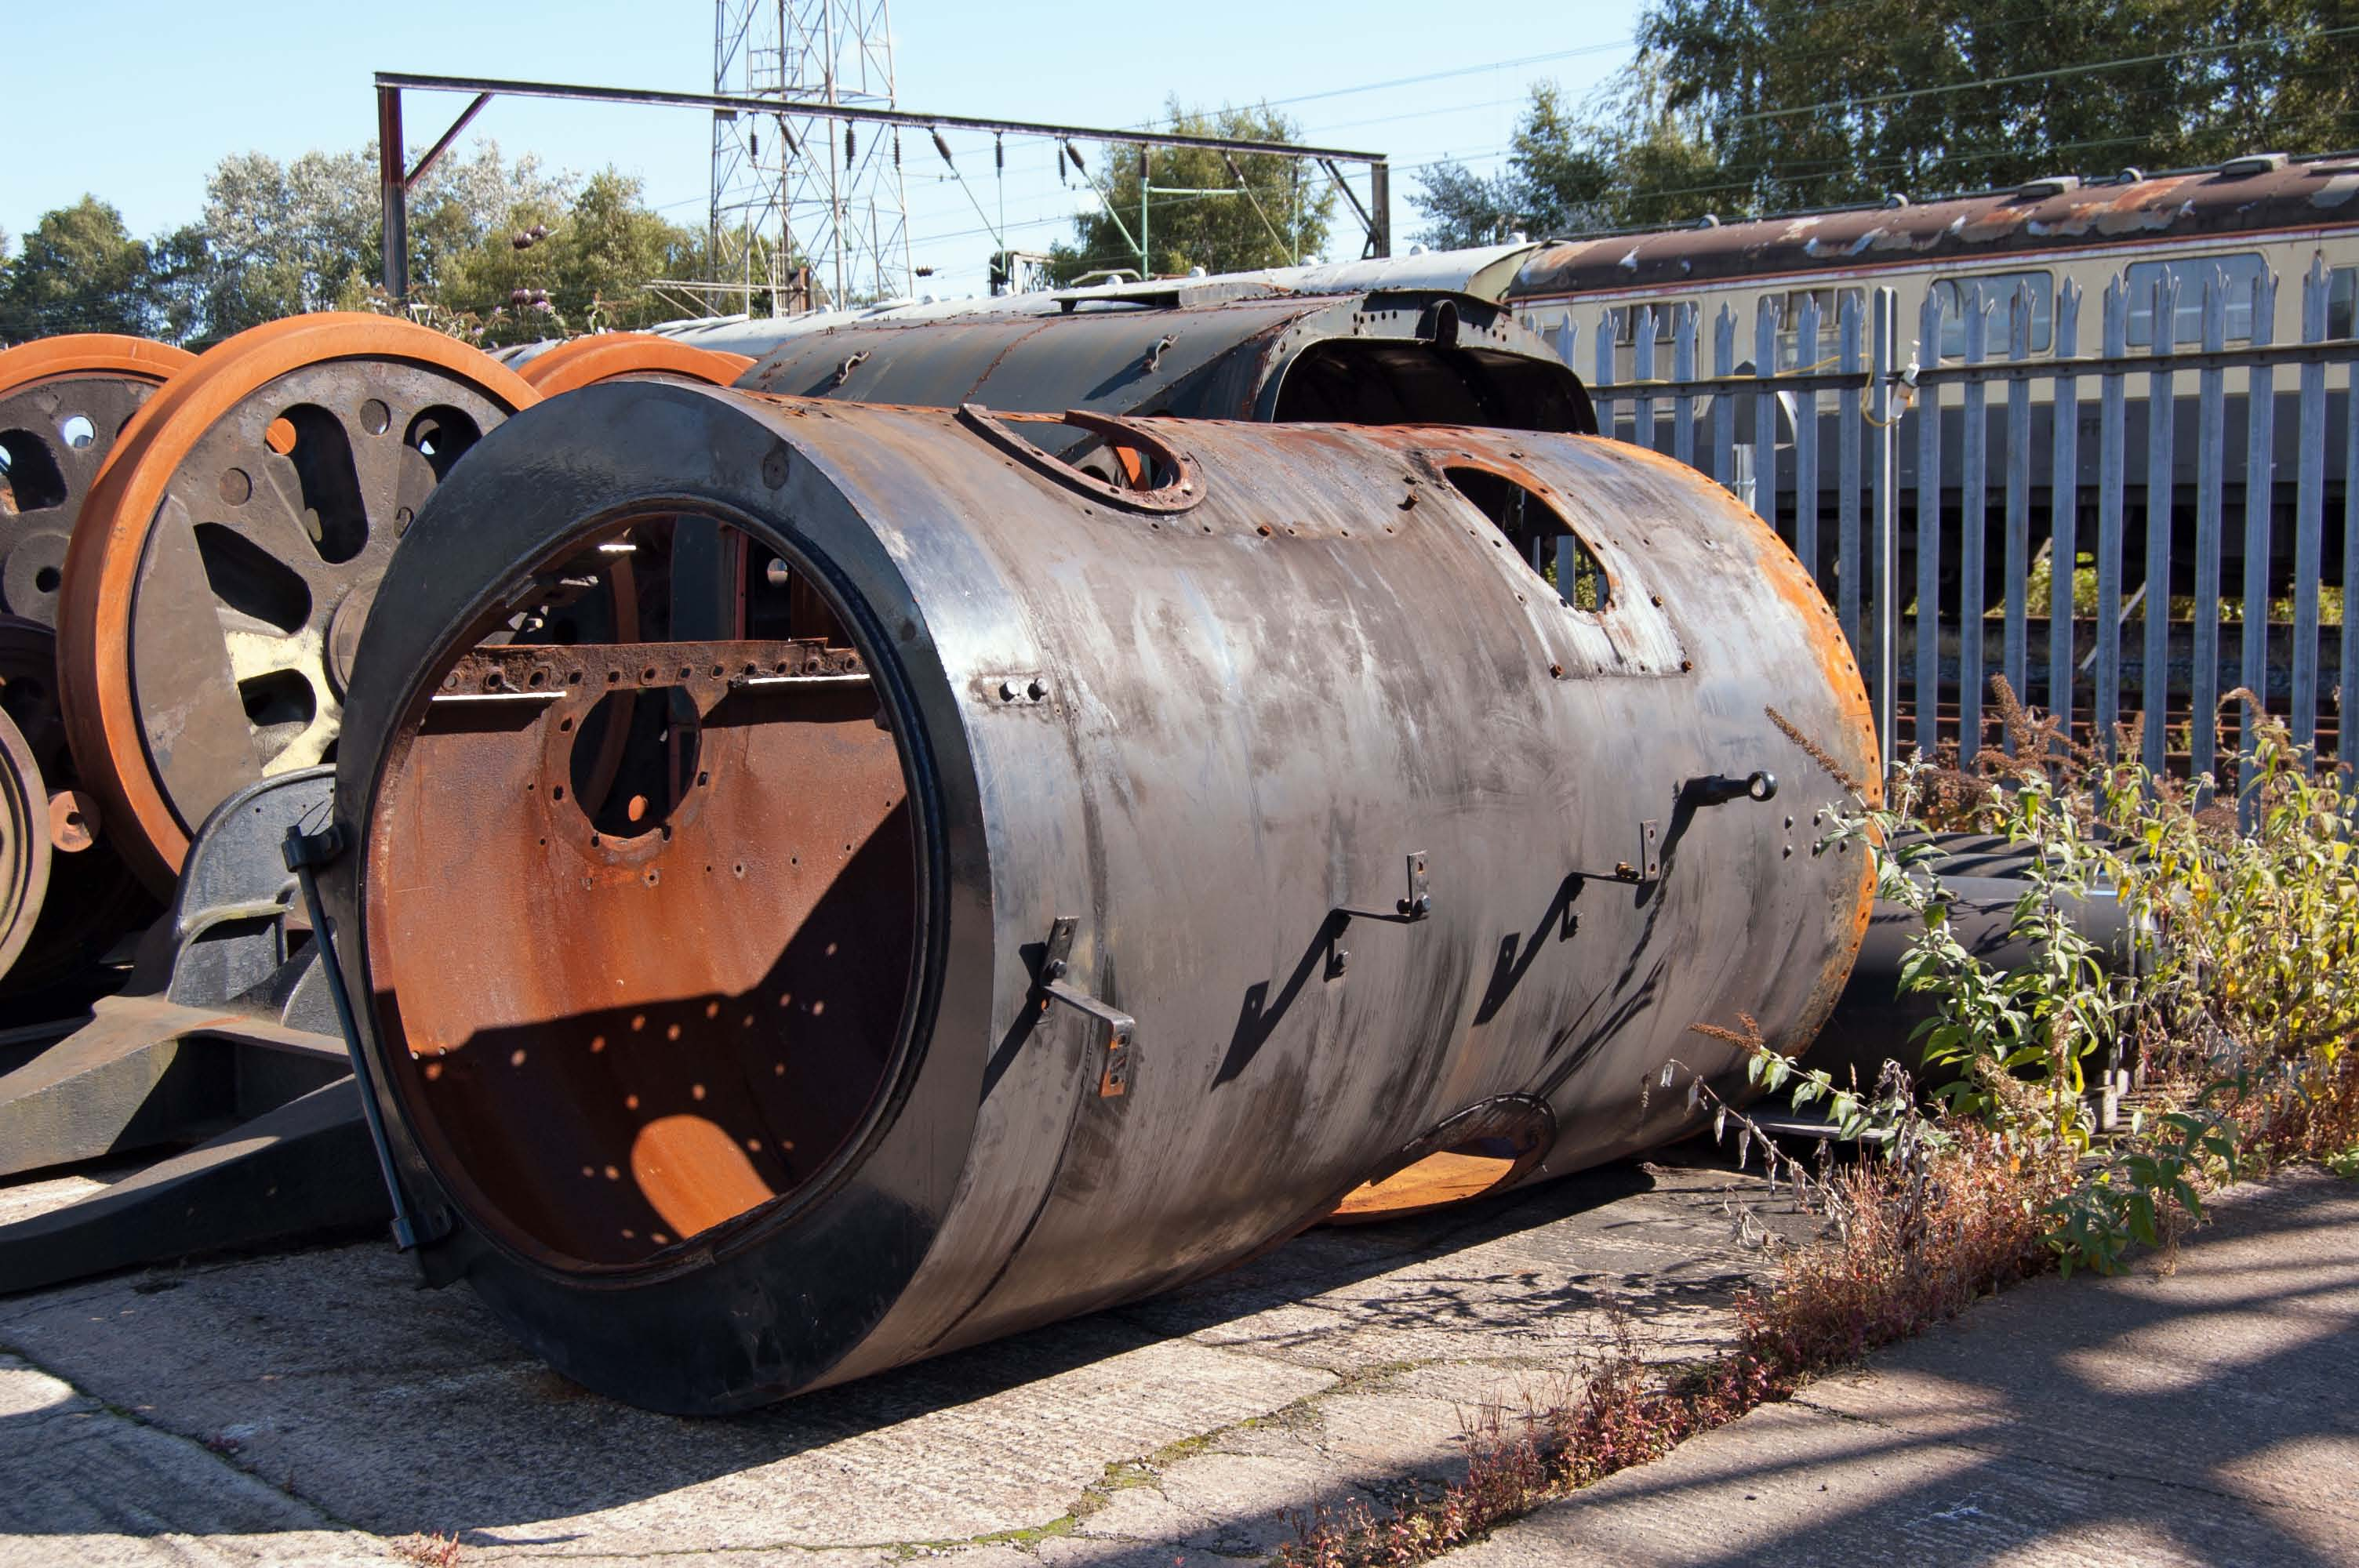 The smokebox has been removed so that the front tubeplate can be replaced